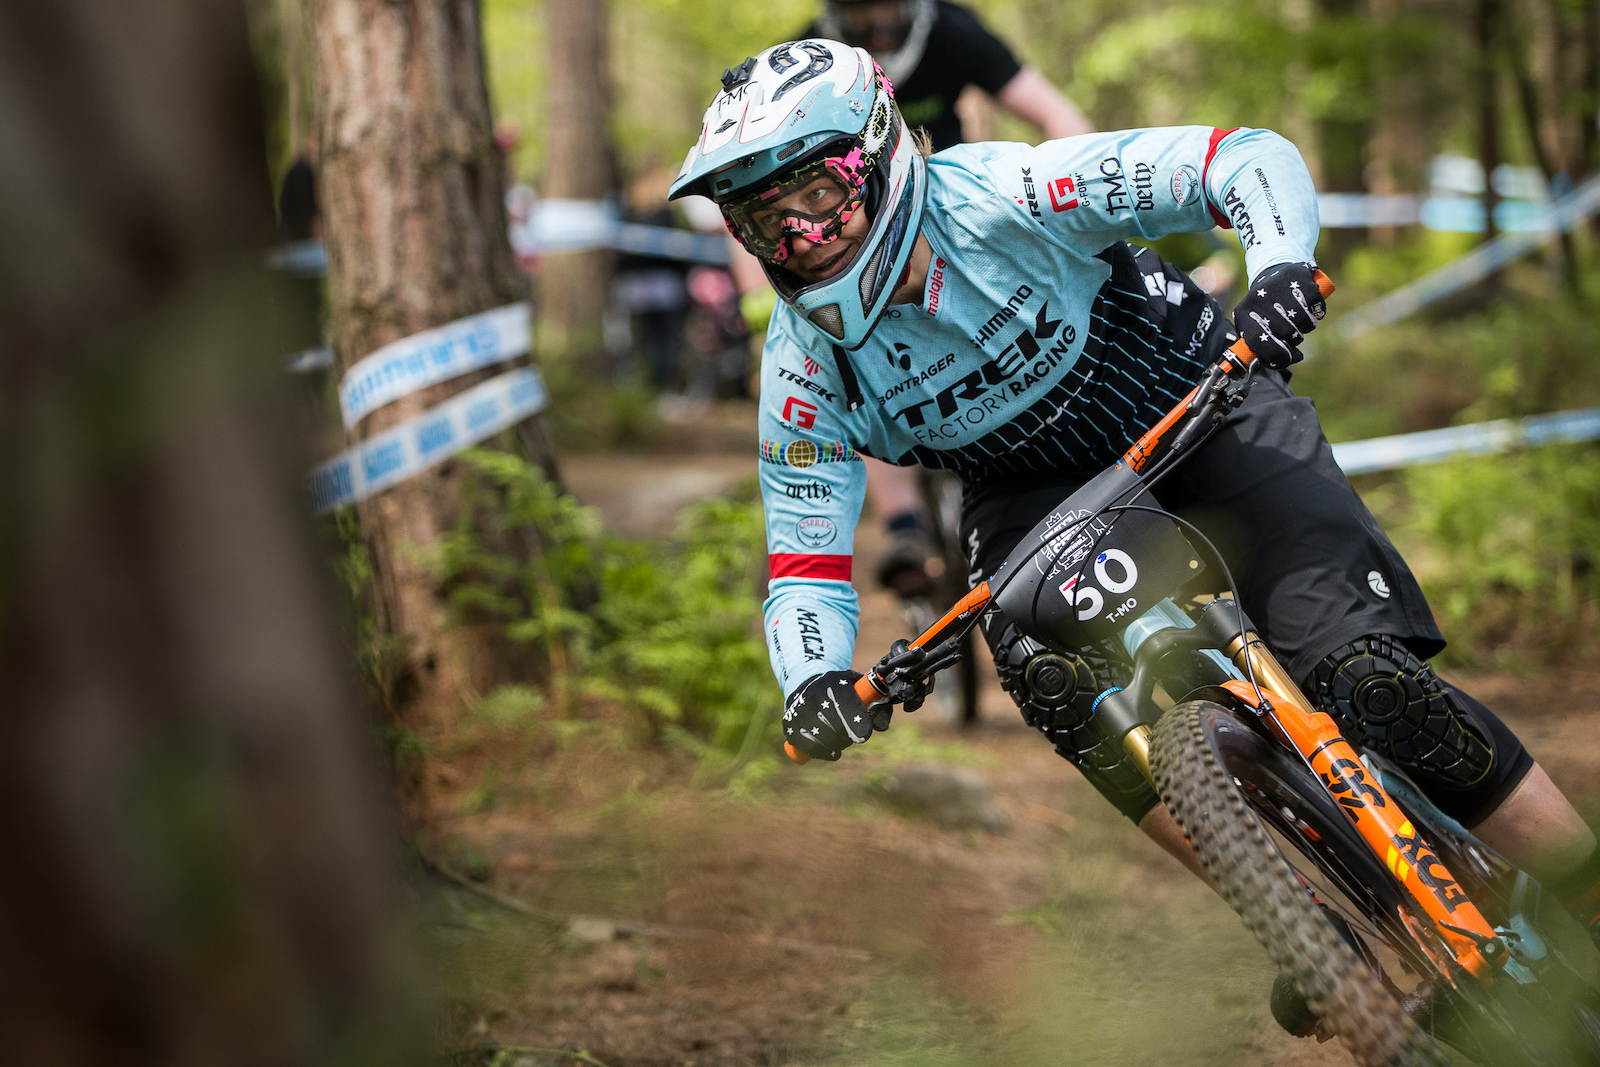 Another win for Tracey Moseley who flew back from the Nove Mesto XC the day before the race